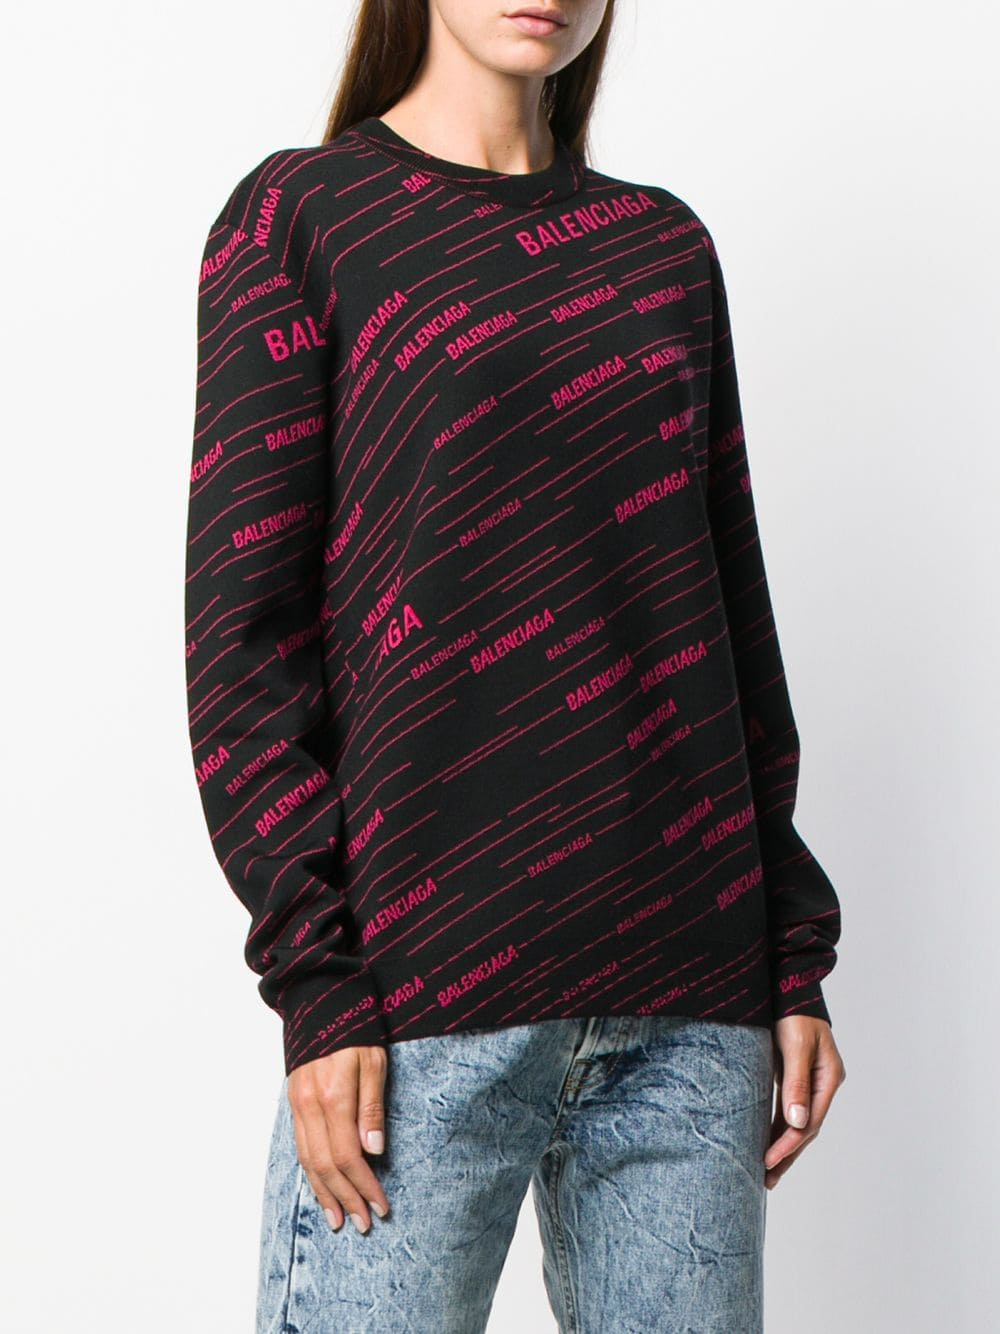 black and raspberry red wool blend jumper with Balenciaga lettering logo all over  BALENCIAGA |  | 583094-T15241092